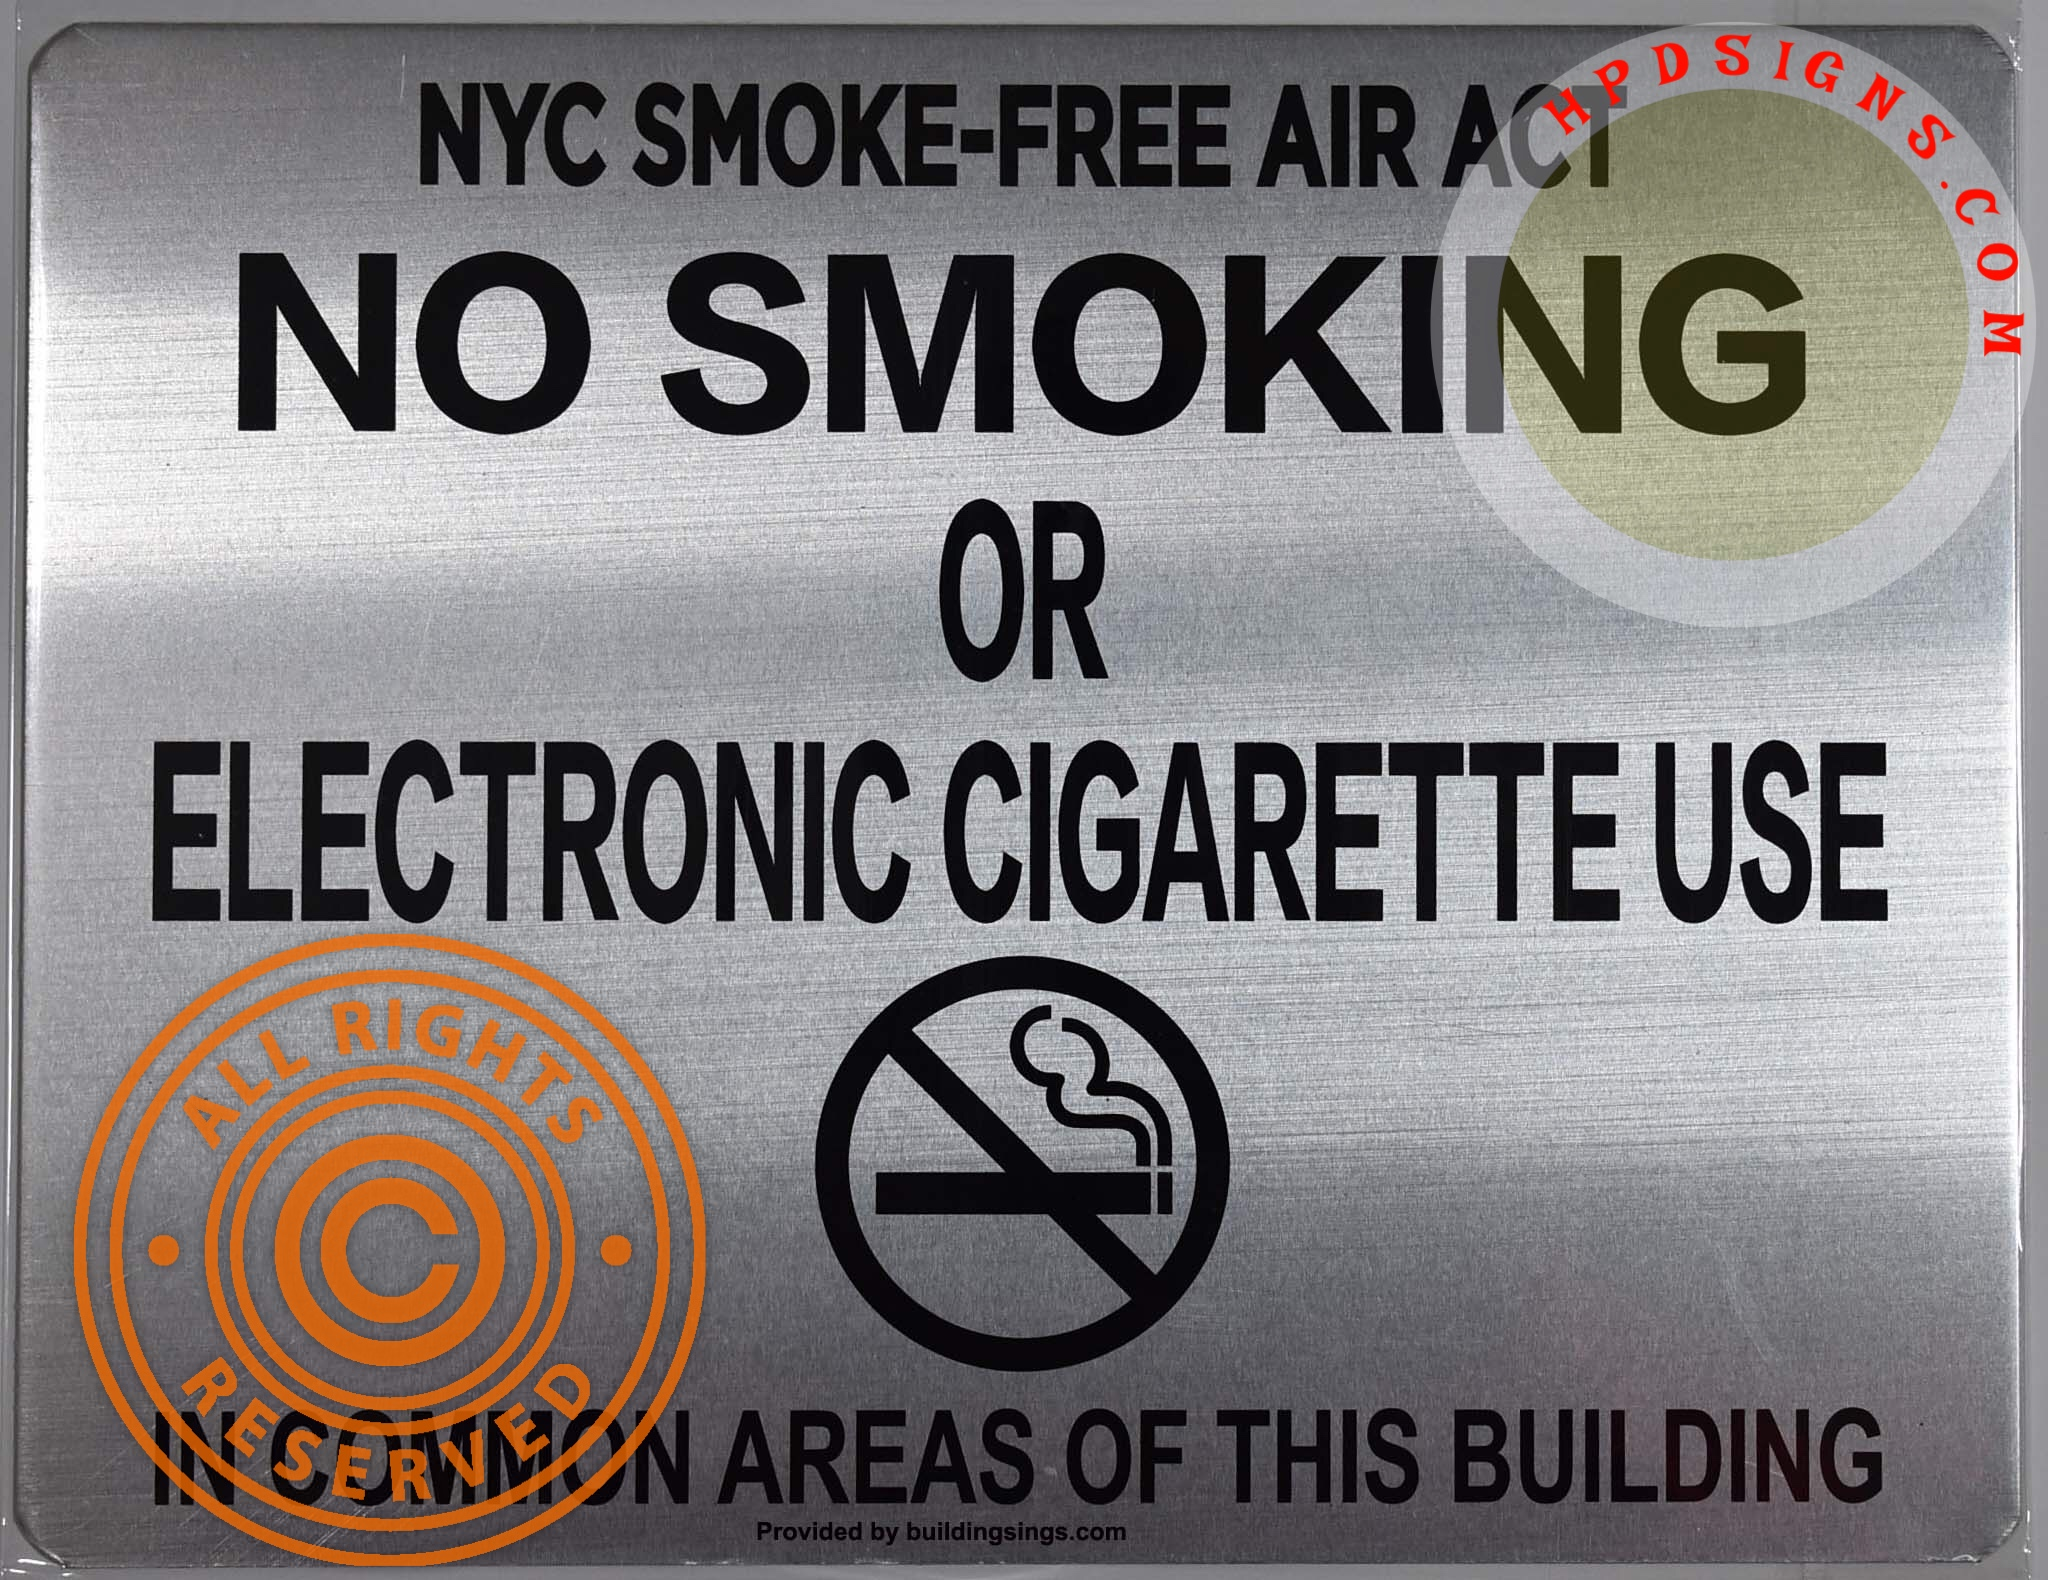 NYC HPD NO SMOKING SIGN